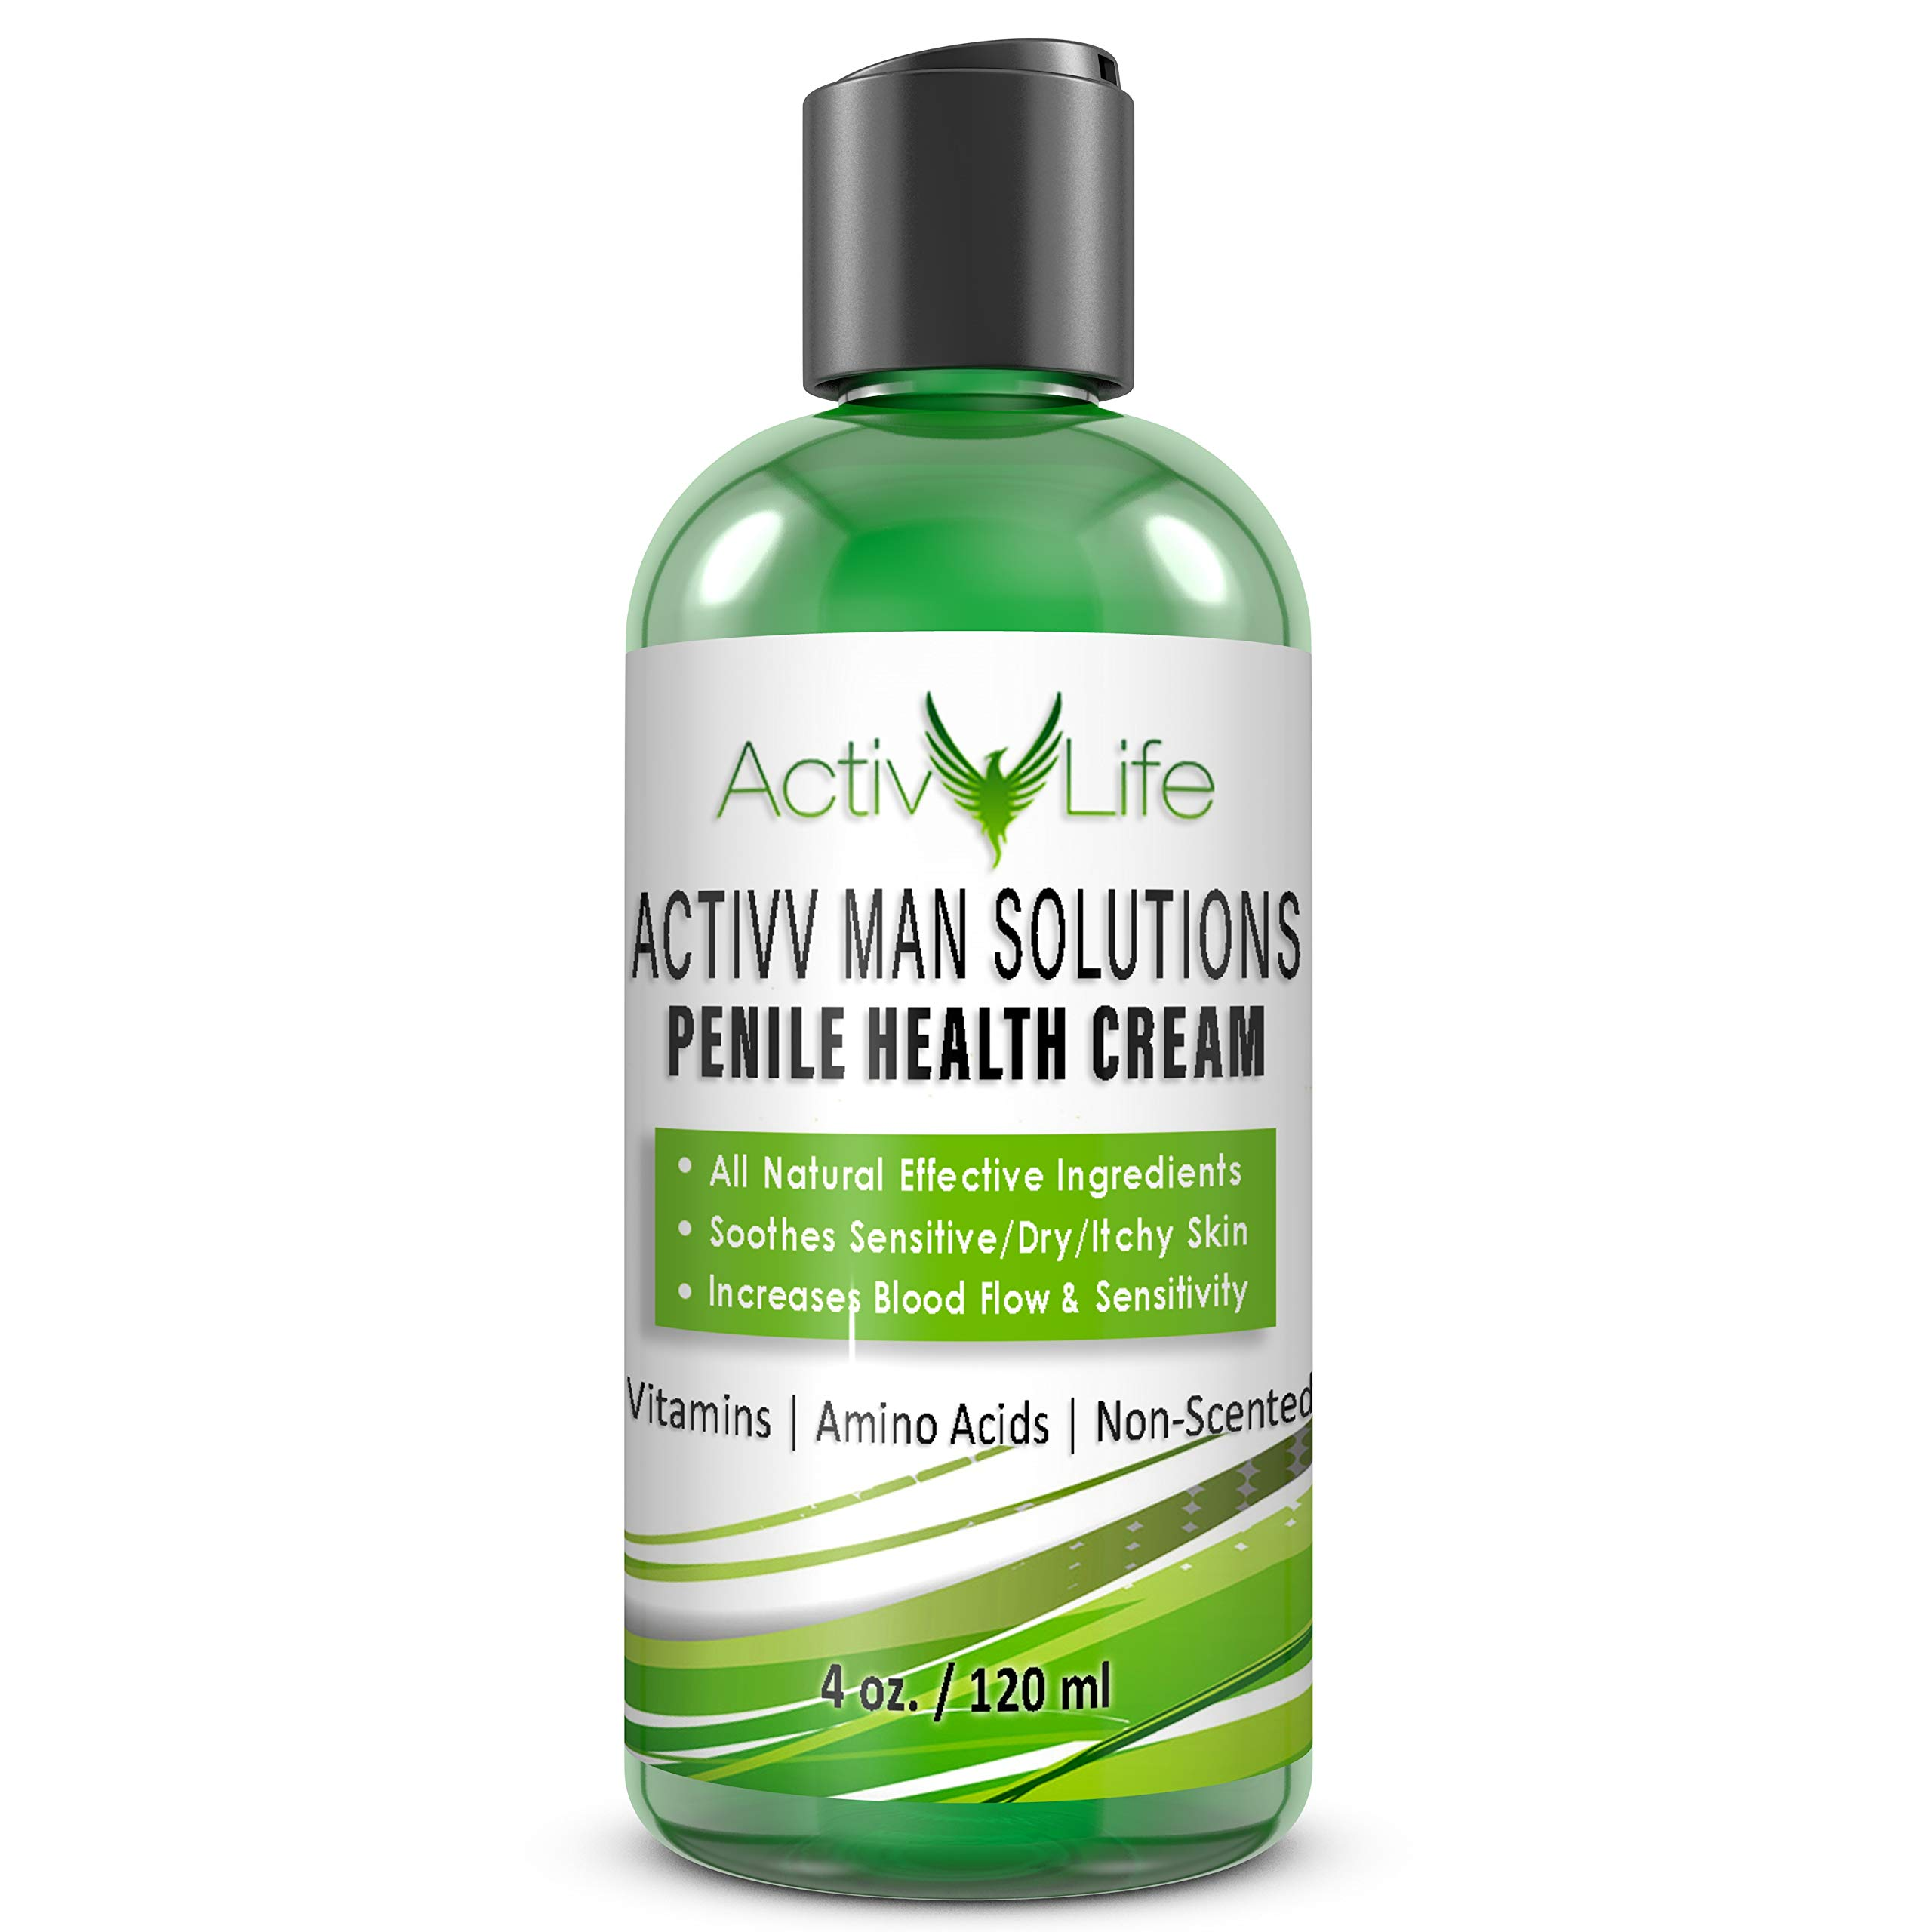 All Natural Penile Health Cream - Treat Irritated, Dry, or Cracked Skin - Find Relief from Chaffing, Eczema and Itching, Increase Penile Sensitivity and Smoothness by Activv Life